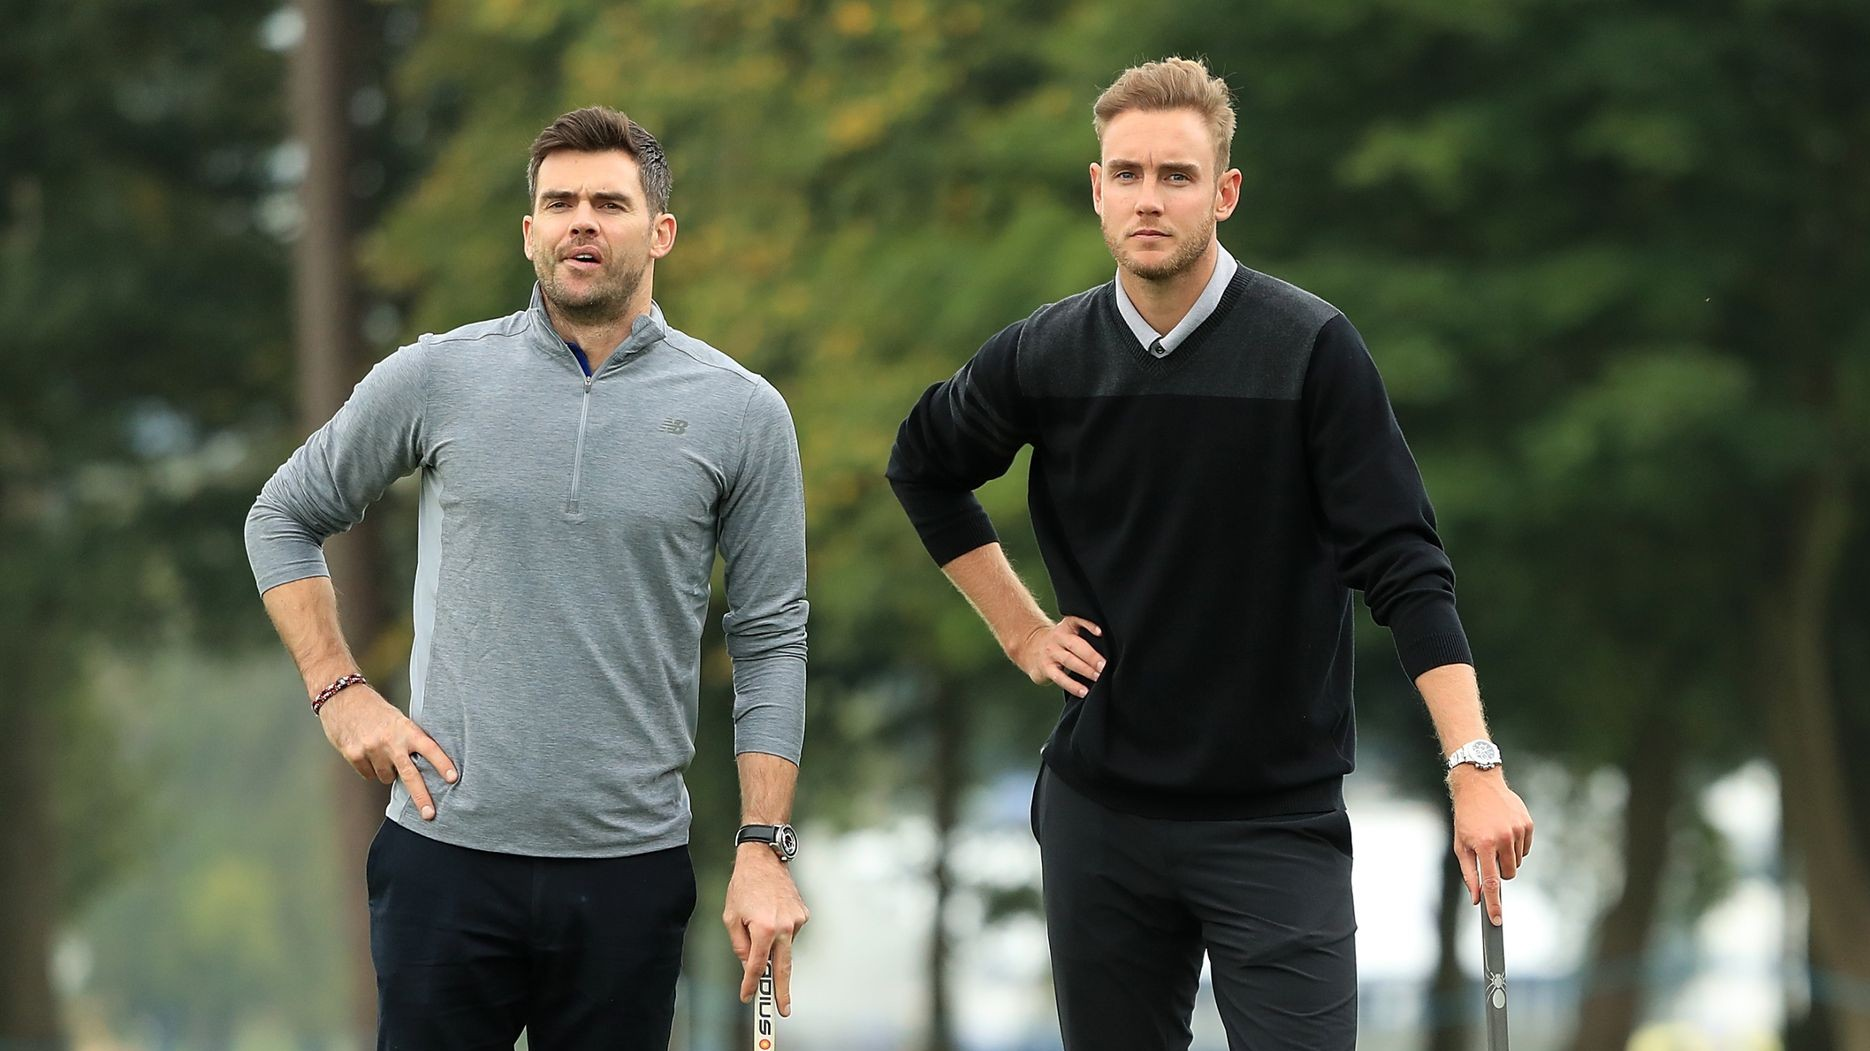 WATCH - Stuart Broad reminds James Anderson of his painful golfing accident on his 38th birthday